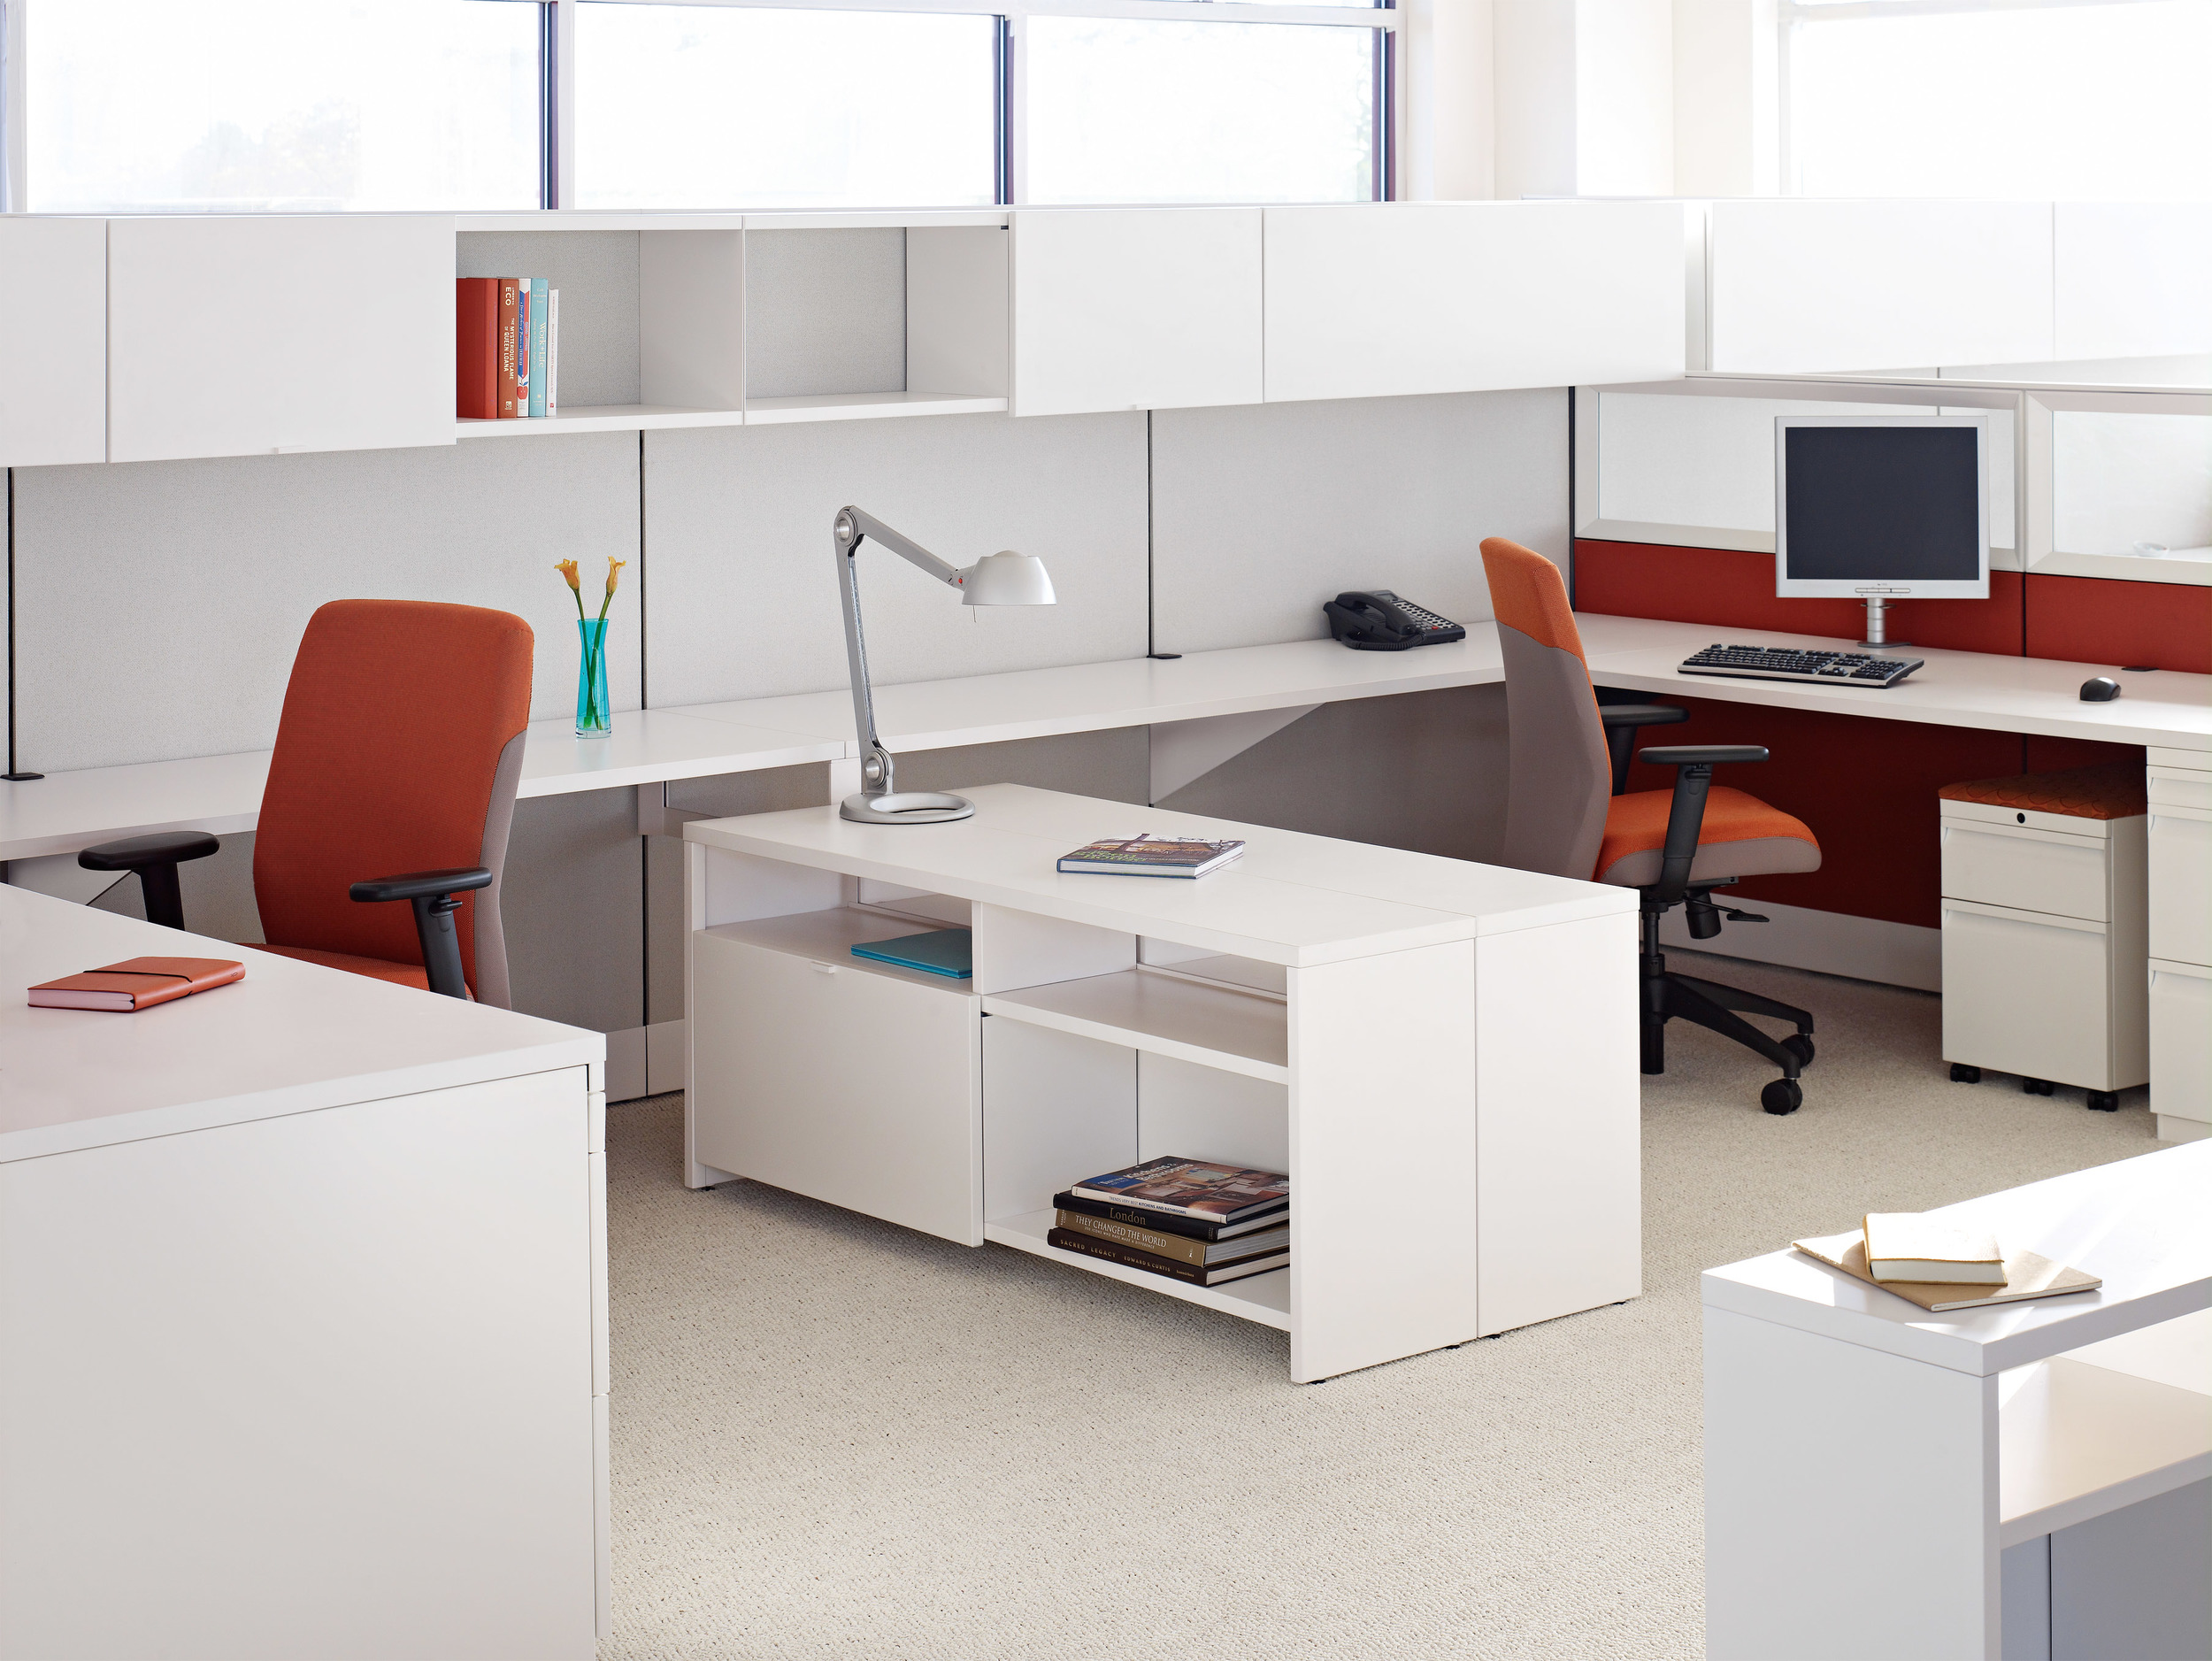 office-cleaning-services-store-cleaning-warehouse-cleaning-living-room-images-office-cabinets.jpg